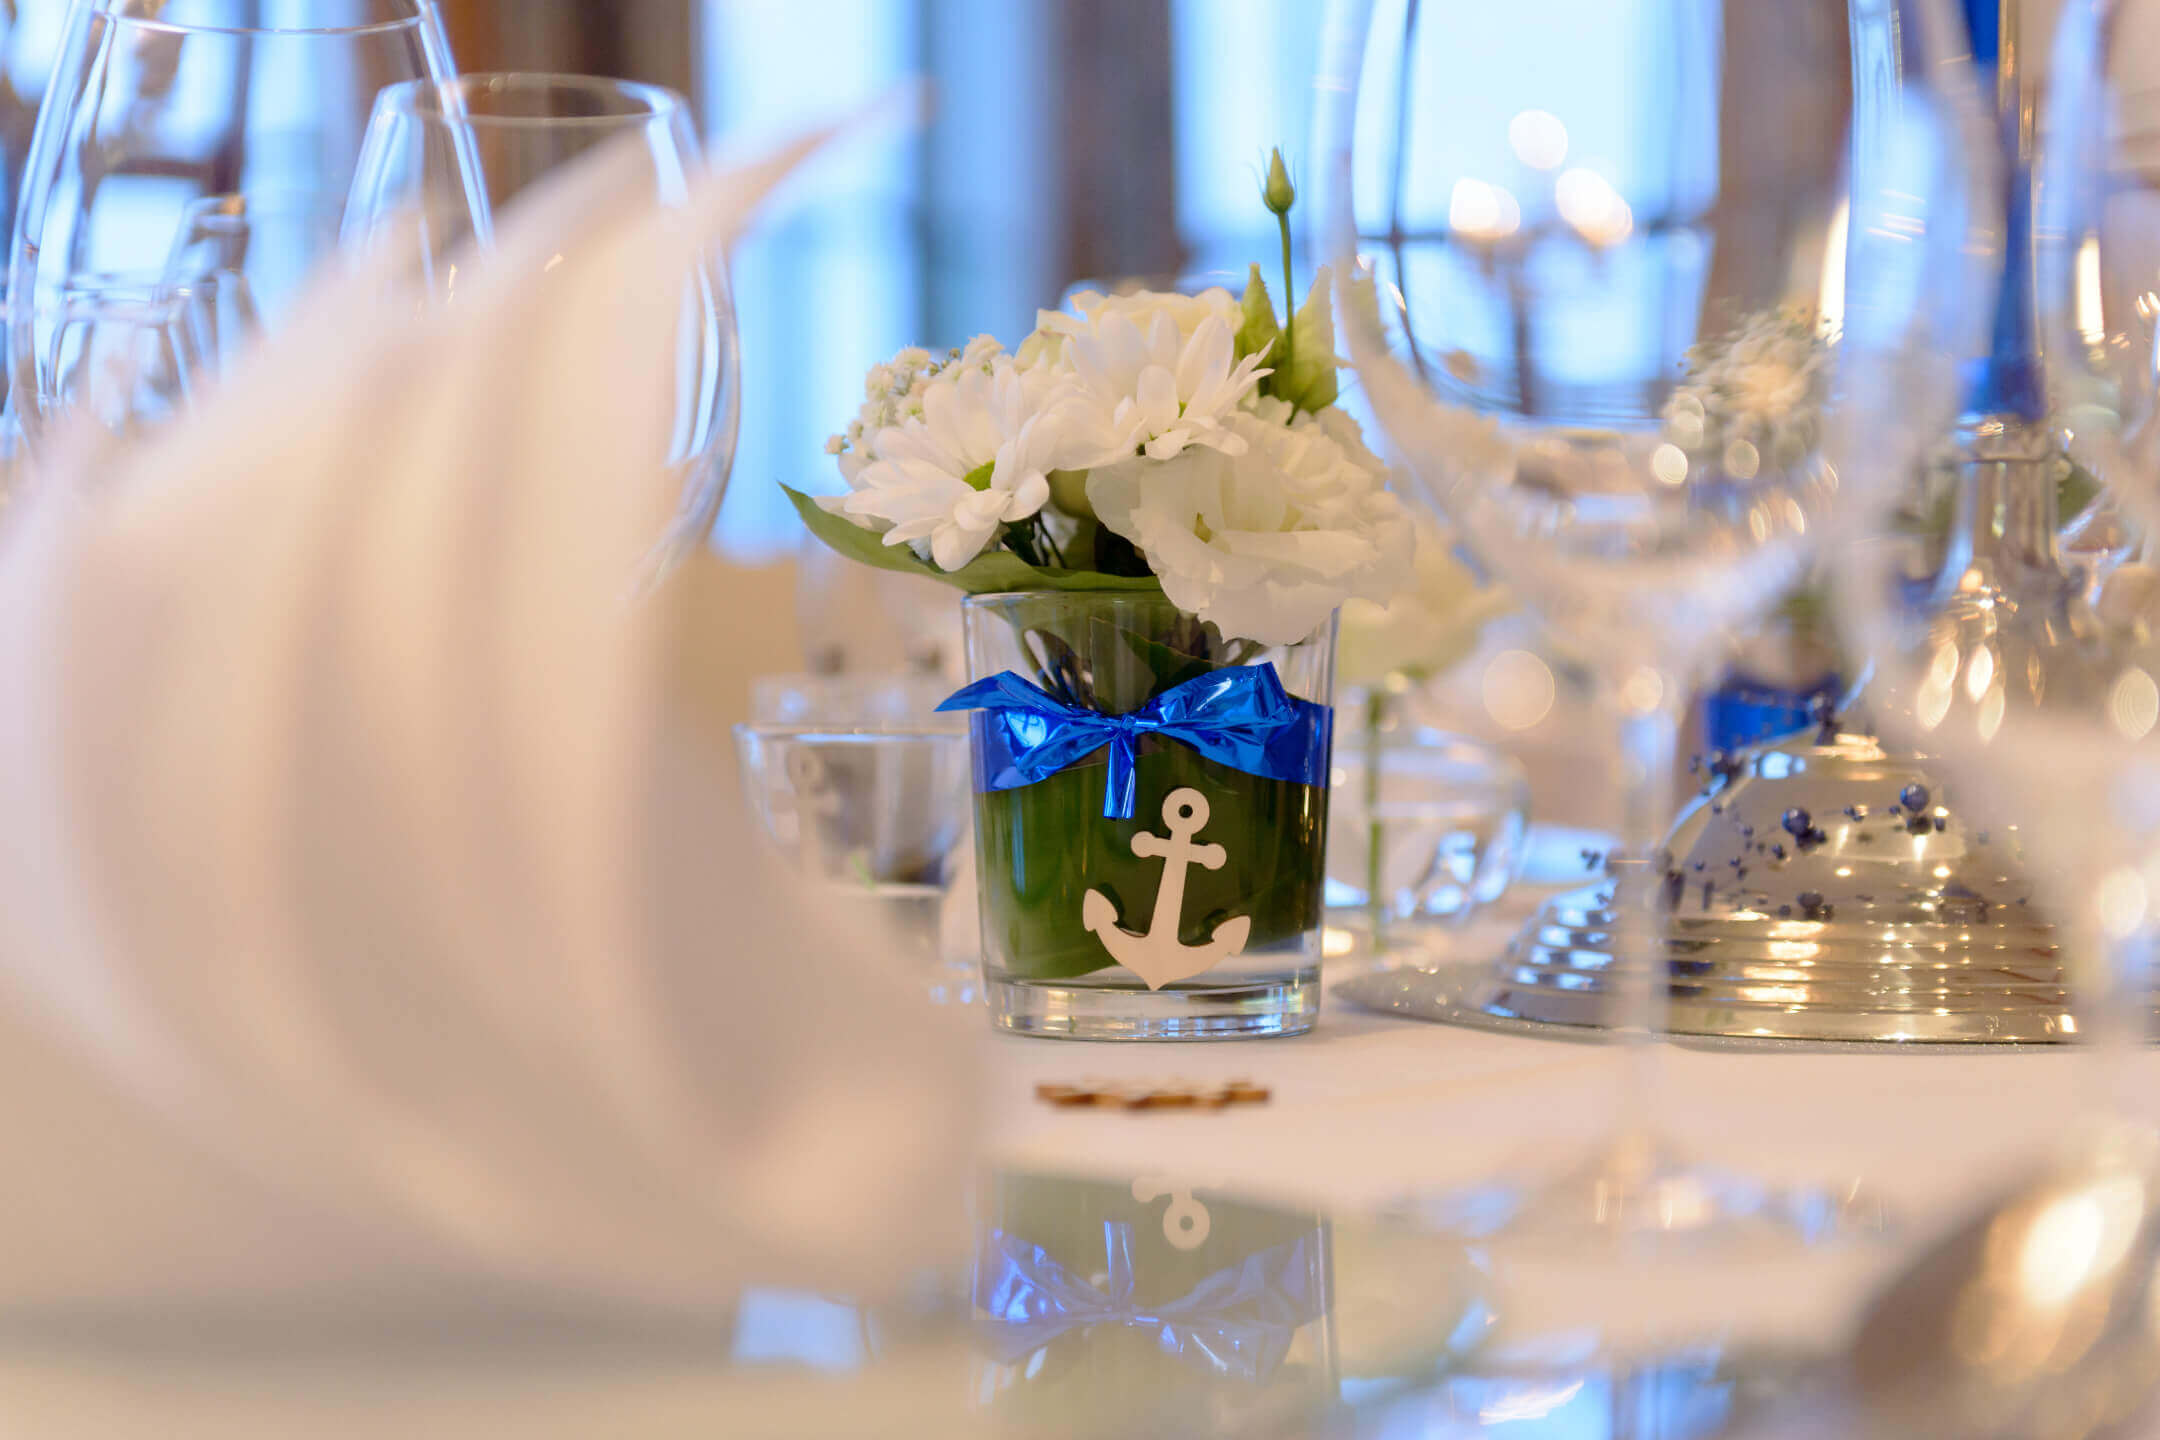 Banquet hall for celebrations | ATLANTIC Hotel Wilhelmshaven